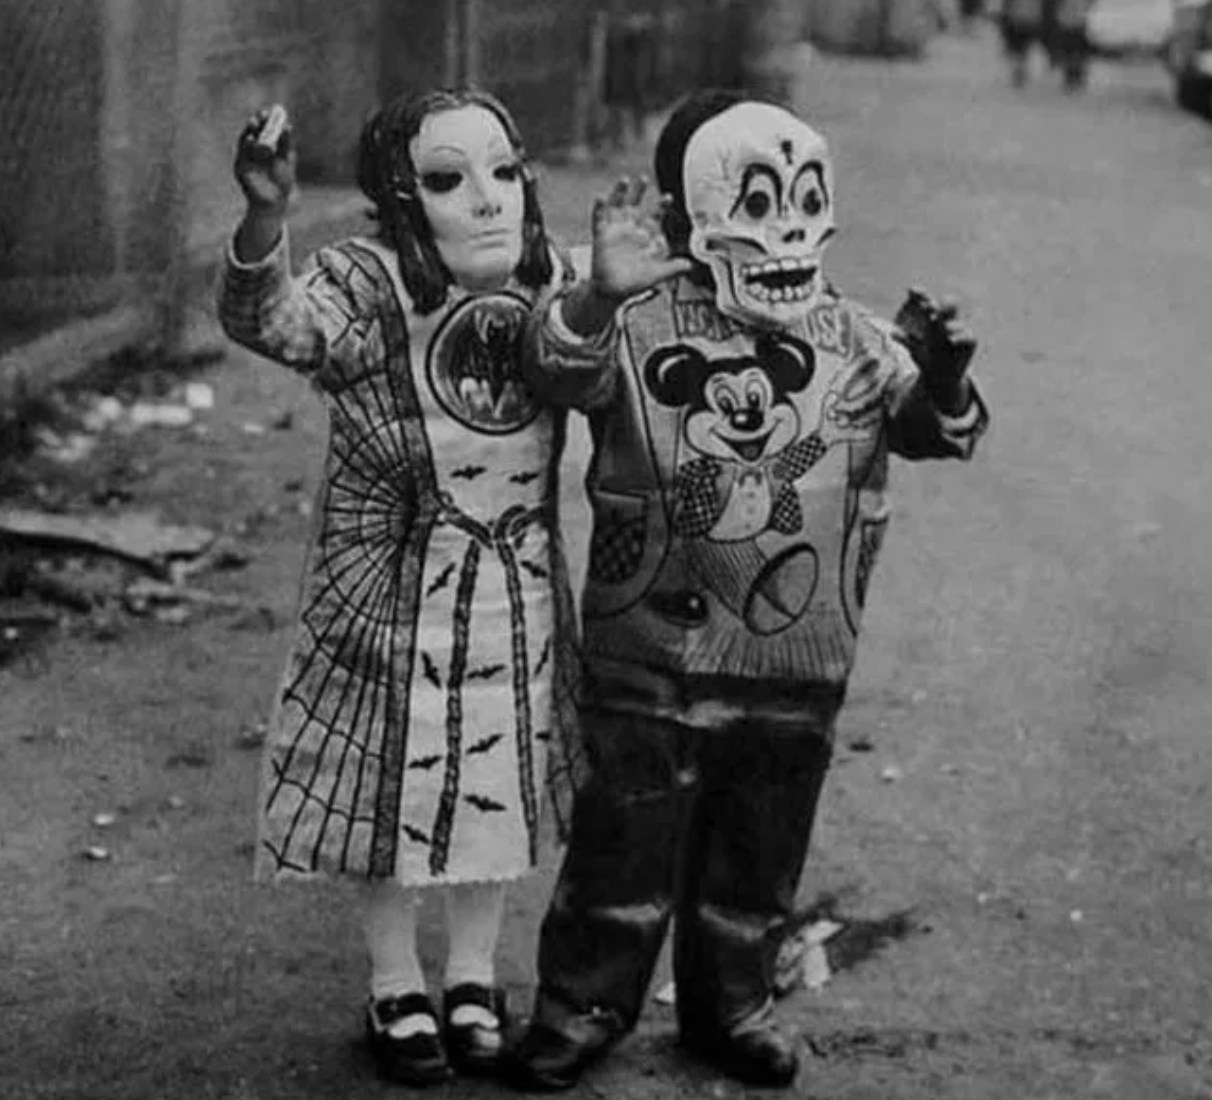 super creepy vintage children's halloween costumes, two terrifying children's vintage halloween costumes